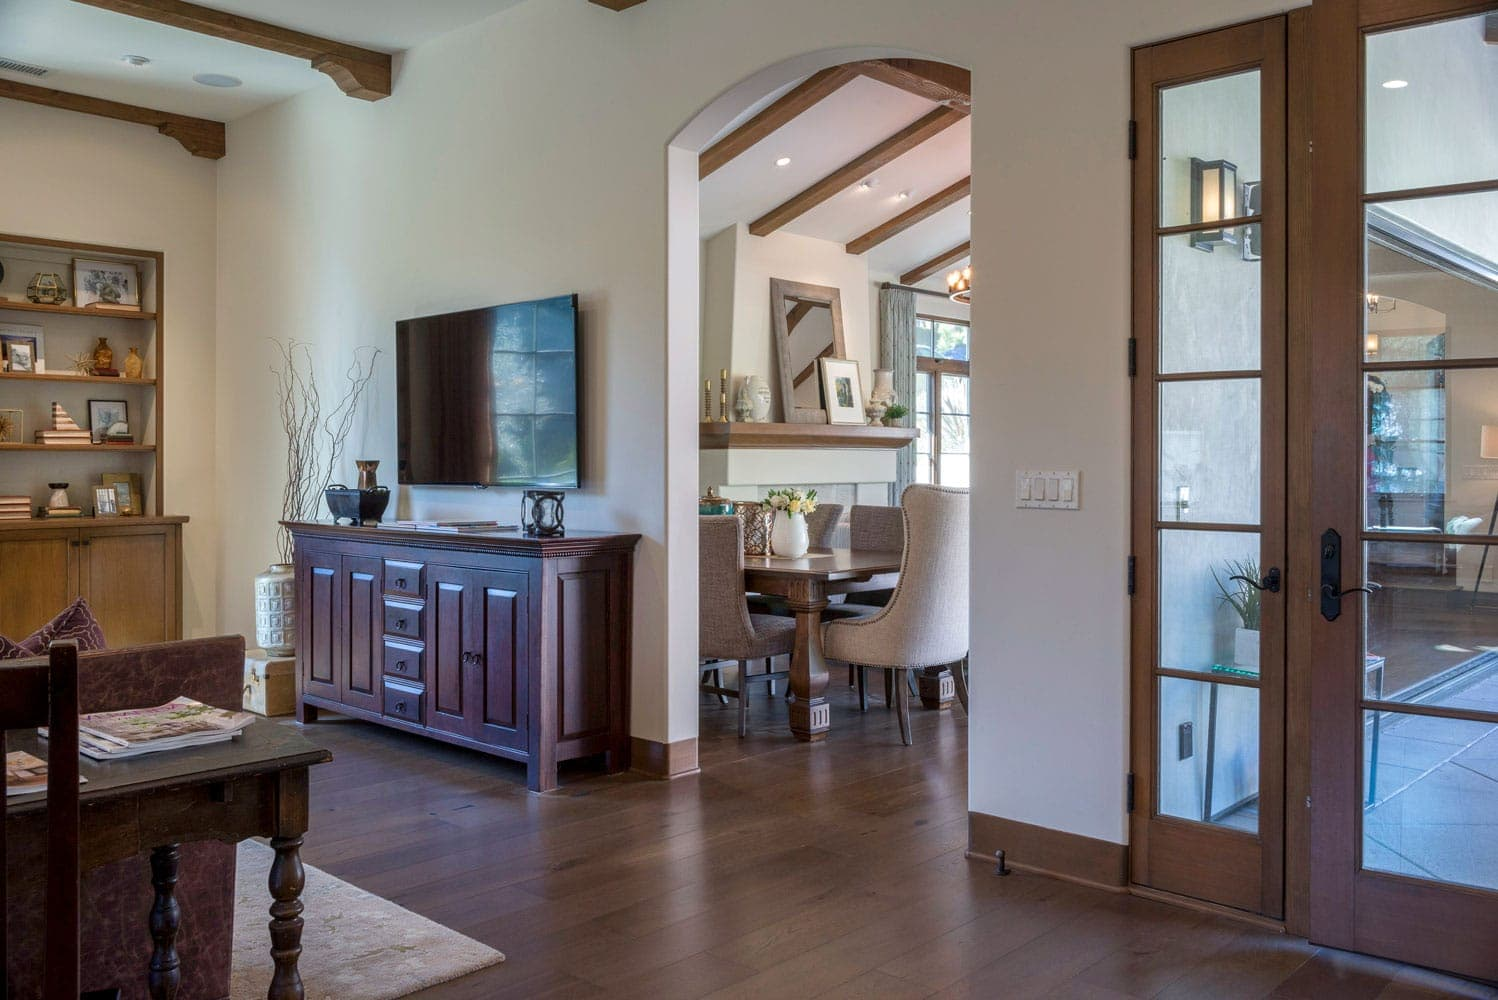 La Cañada Blvd house hallway interior design